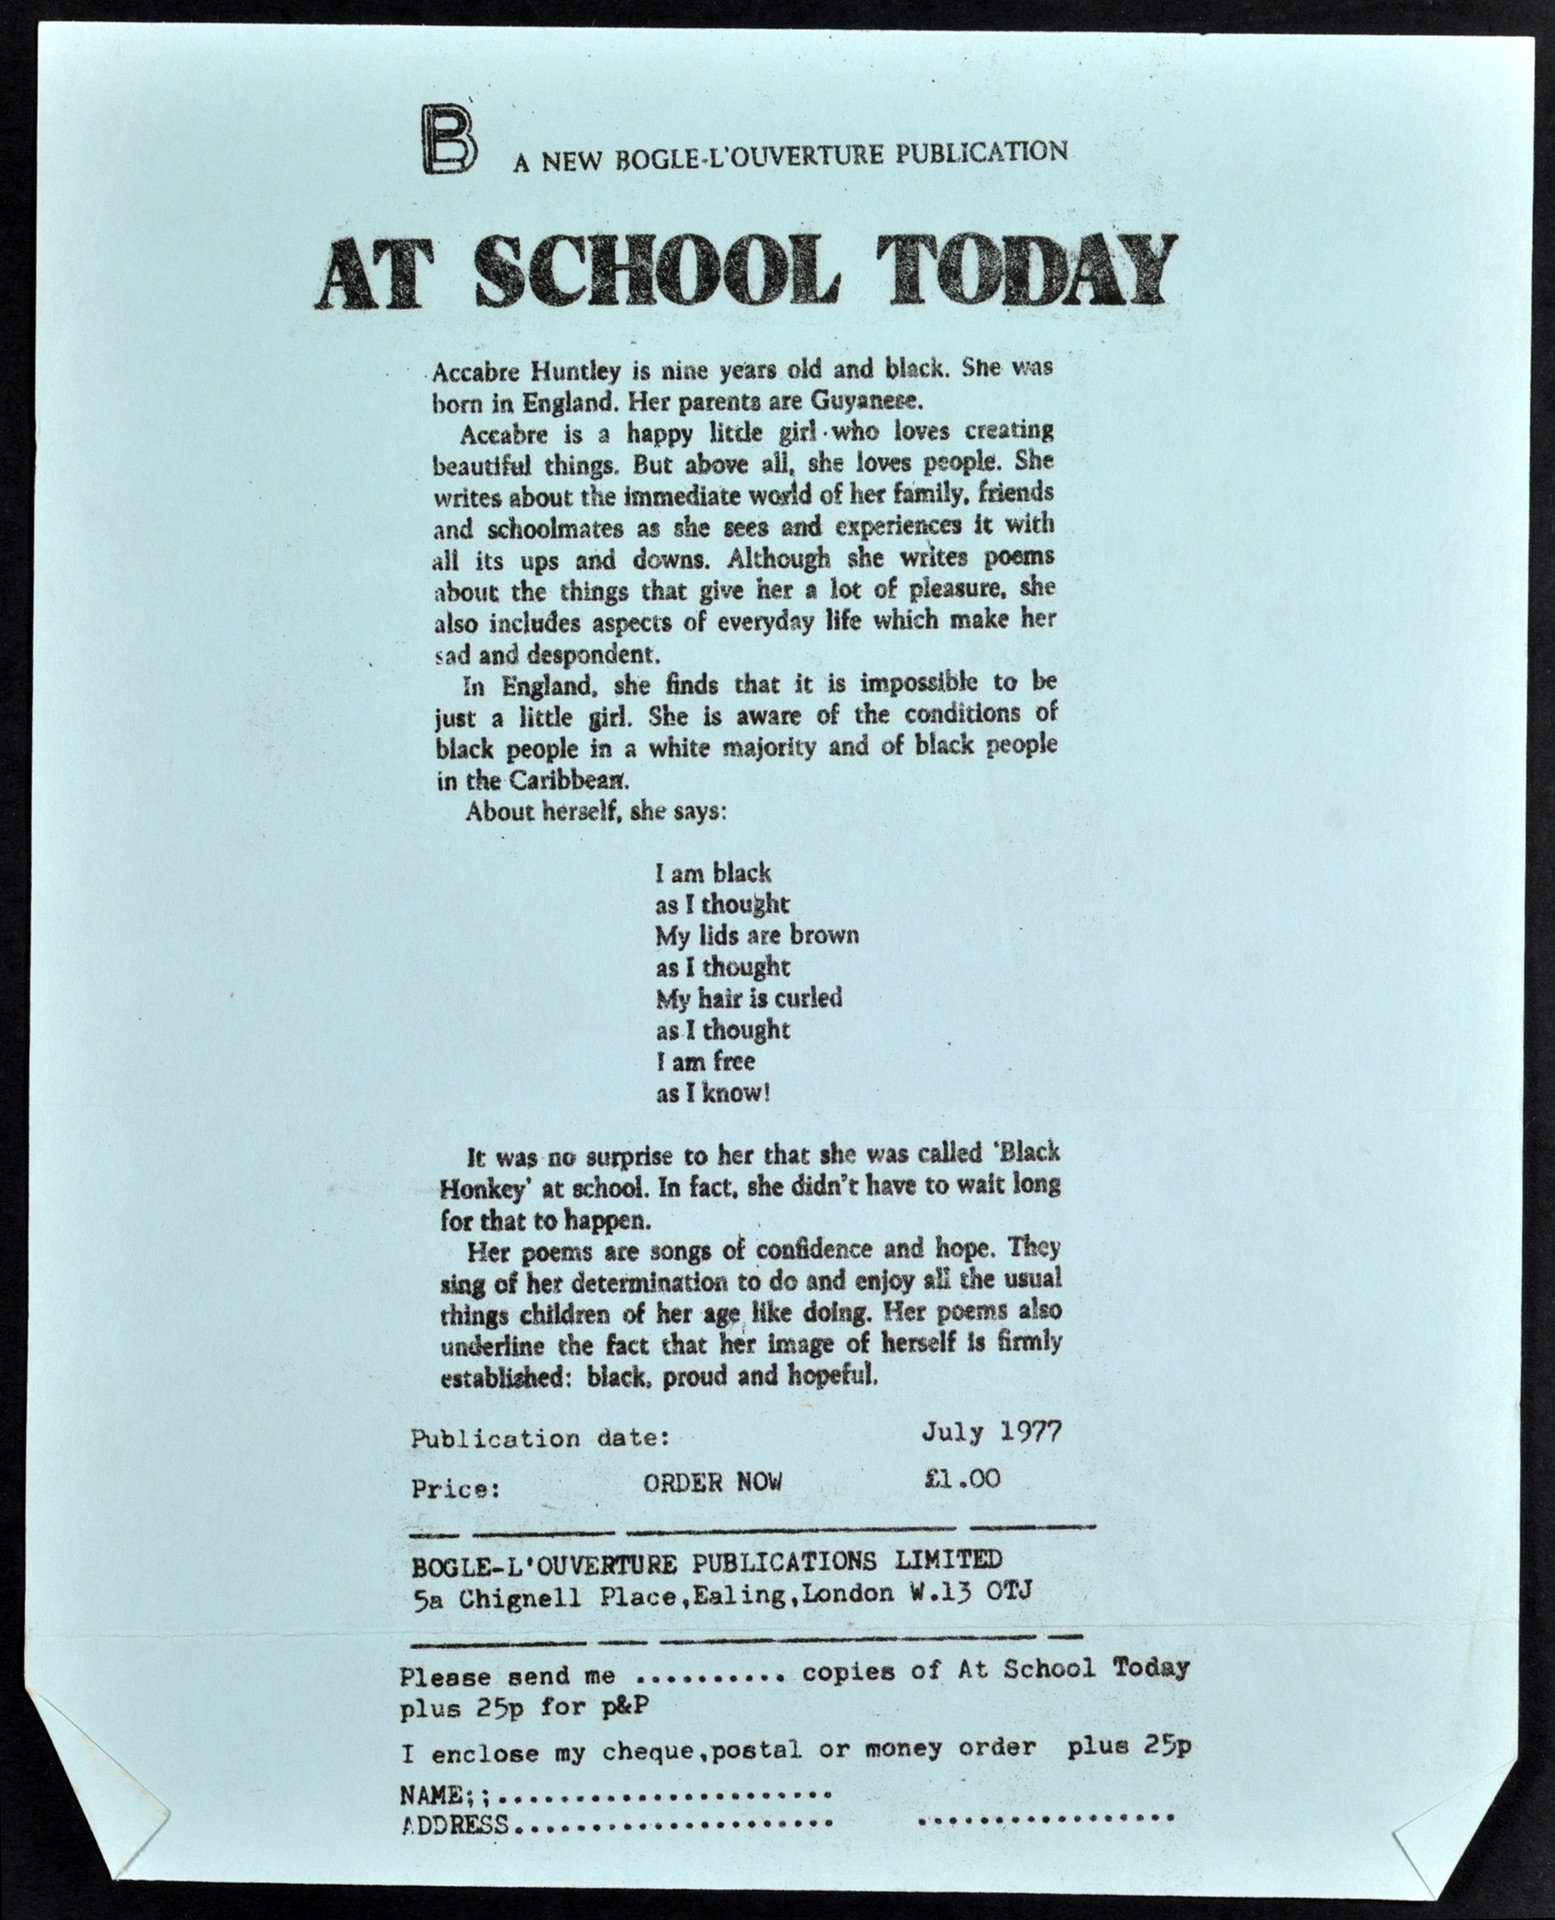 _04 At School Today-Accabre Huntley (publication notice).July 1977. Huntley Archives at London Metro